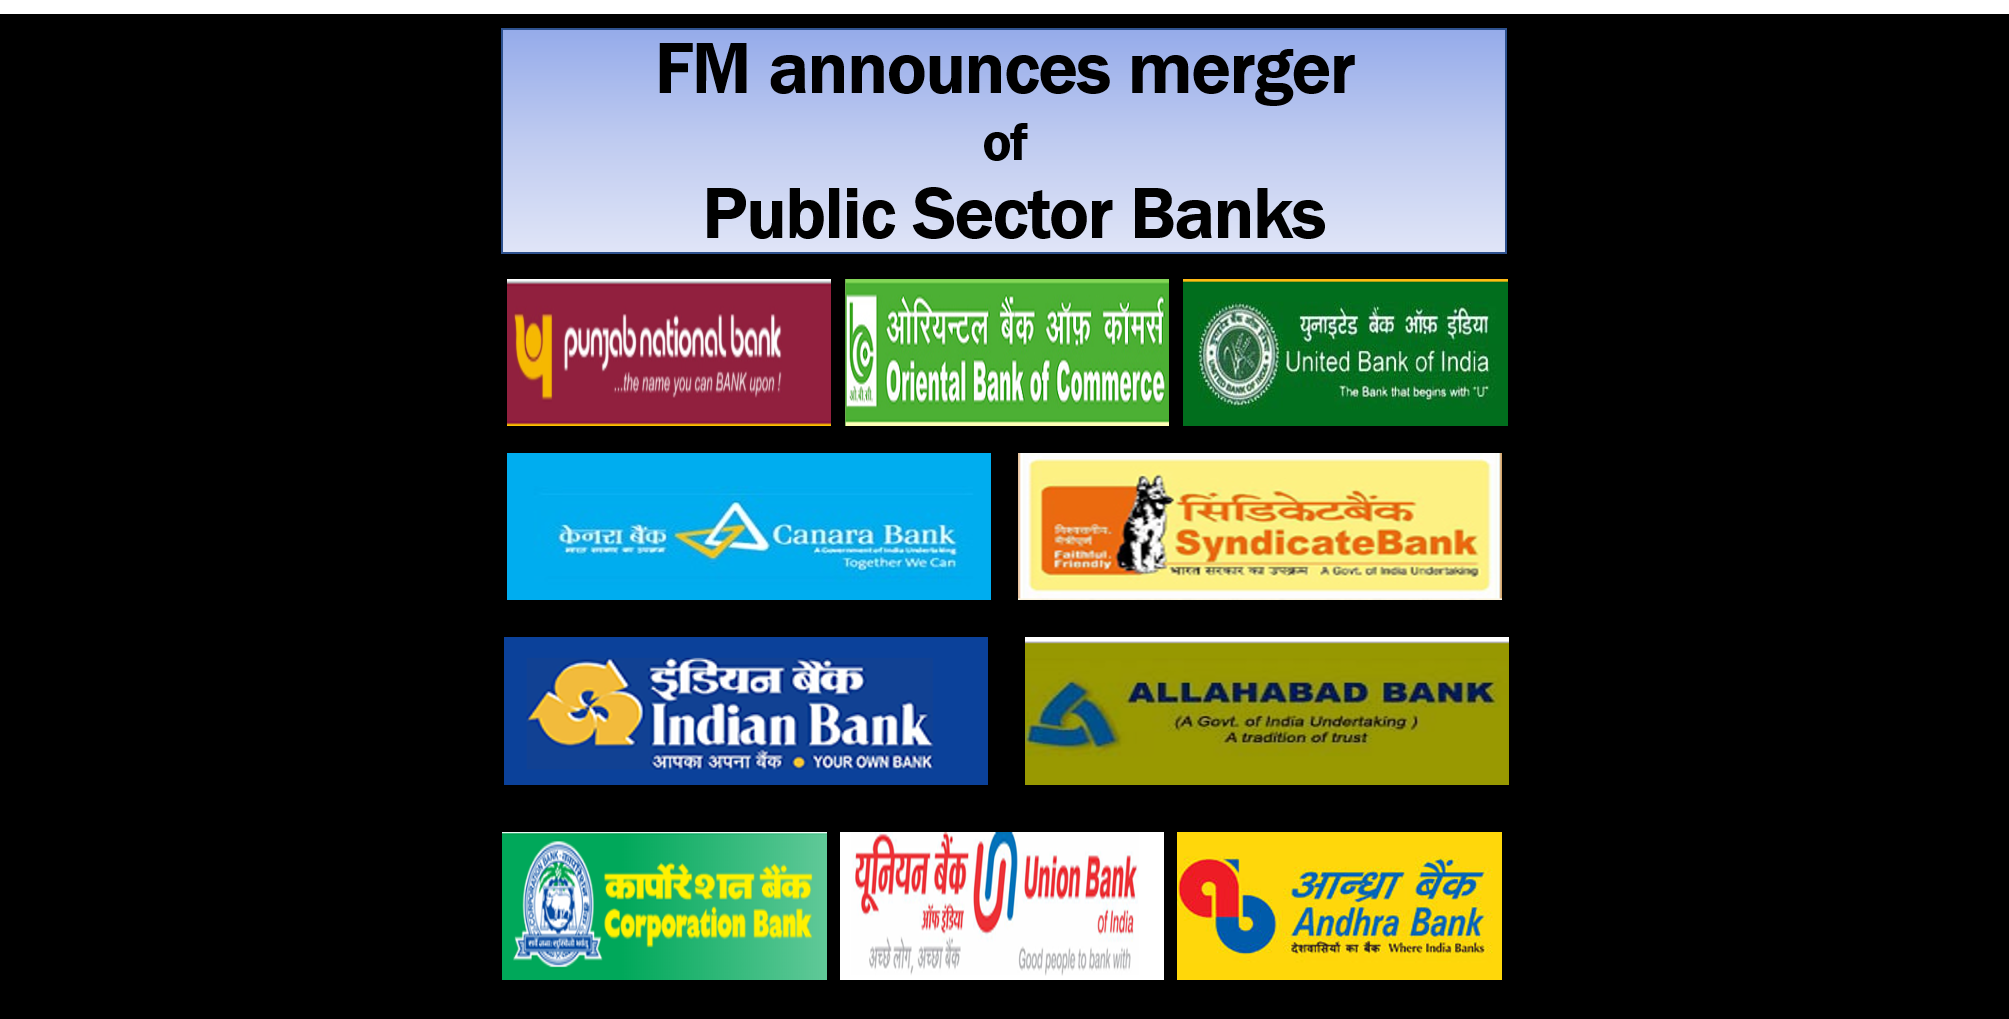 FM announces merger of Public Sector Banks